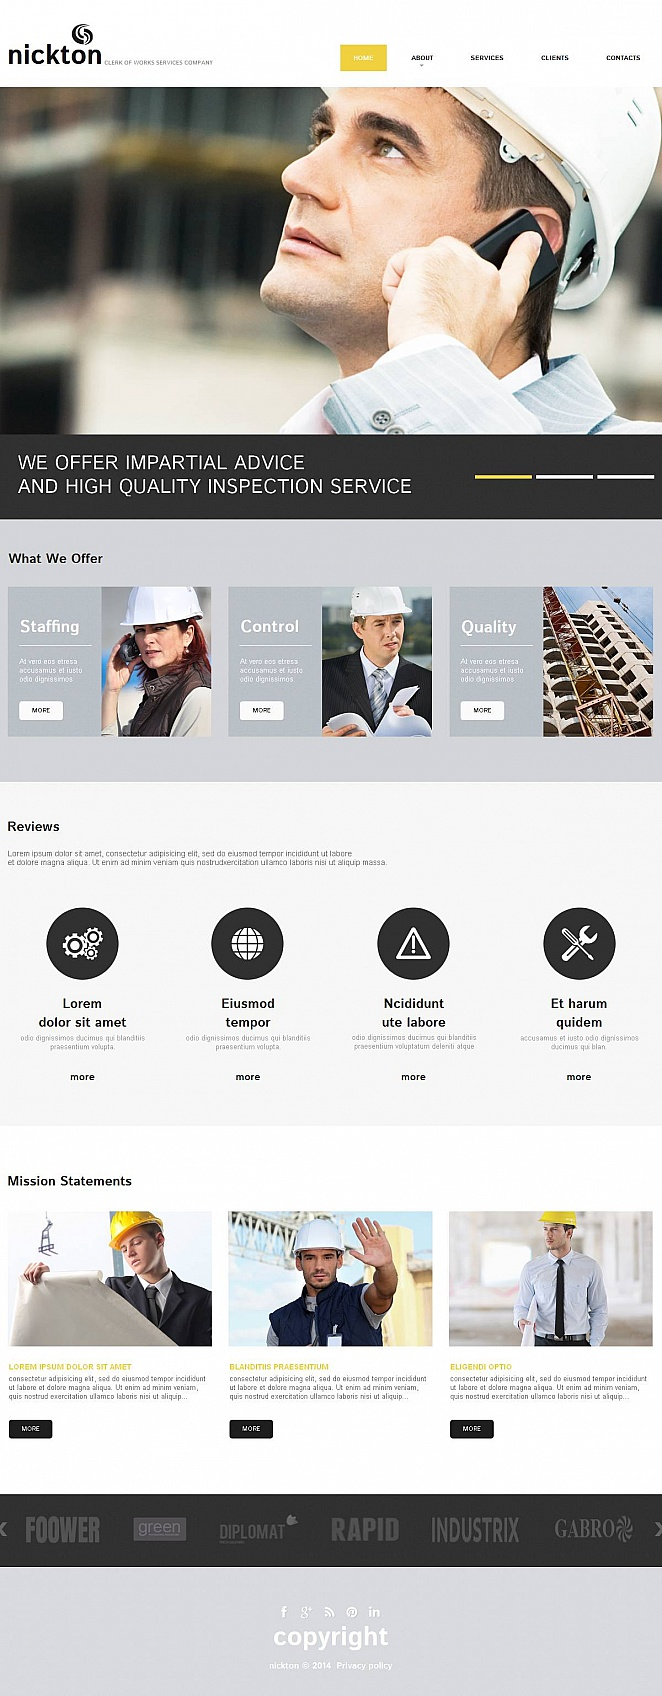 Clerk of Works Website Template for Construction Businesses - image